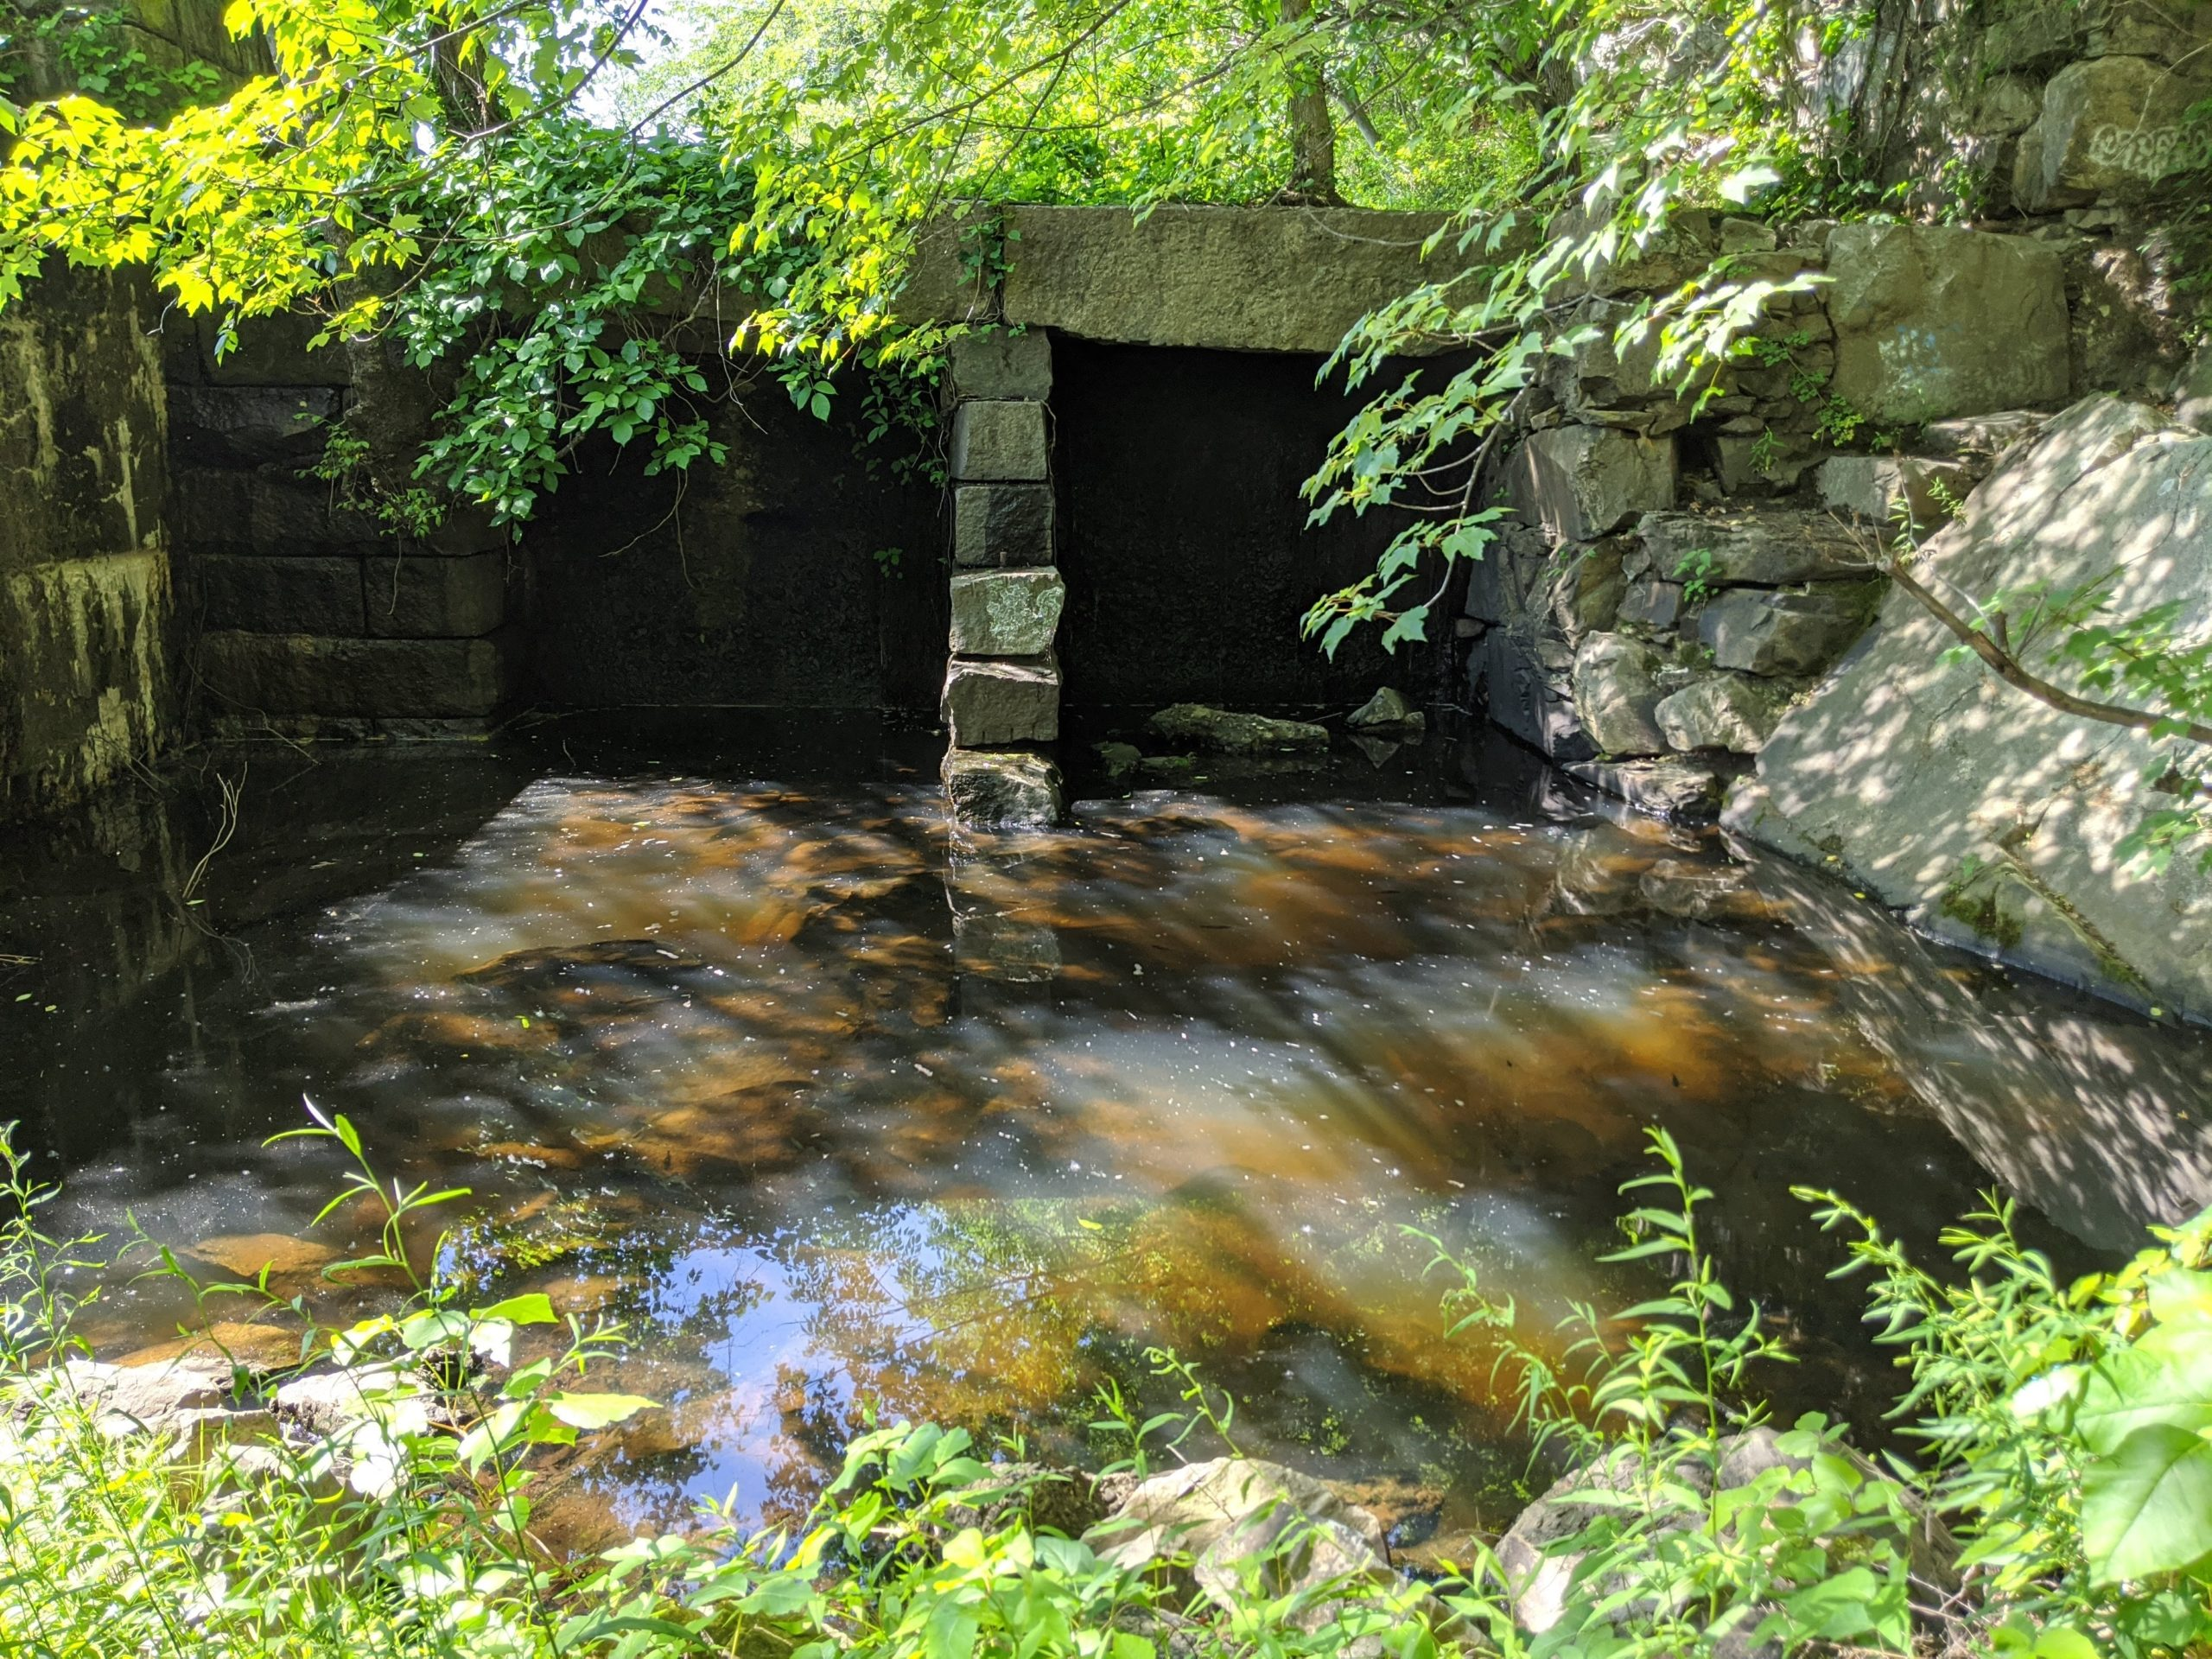 The Albion Dam on the Blackstone River in Cumberland, R.I.